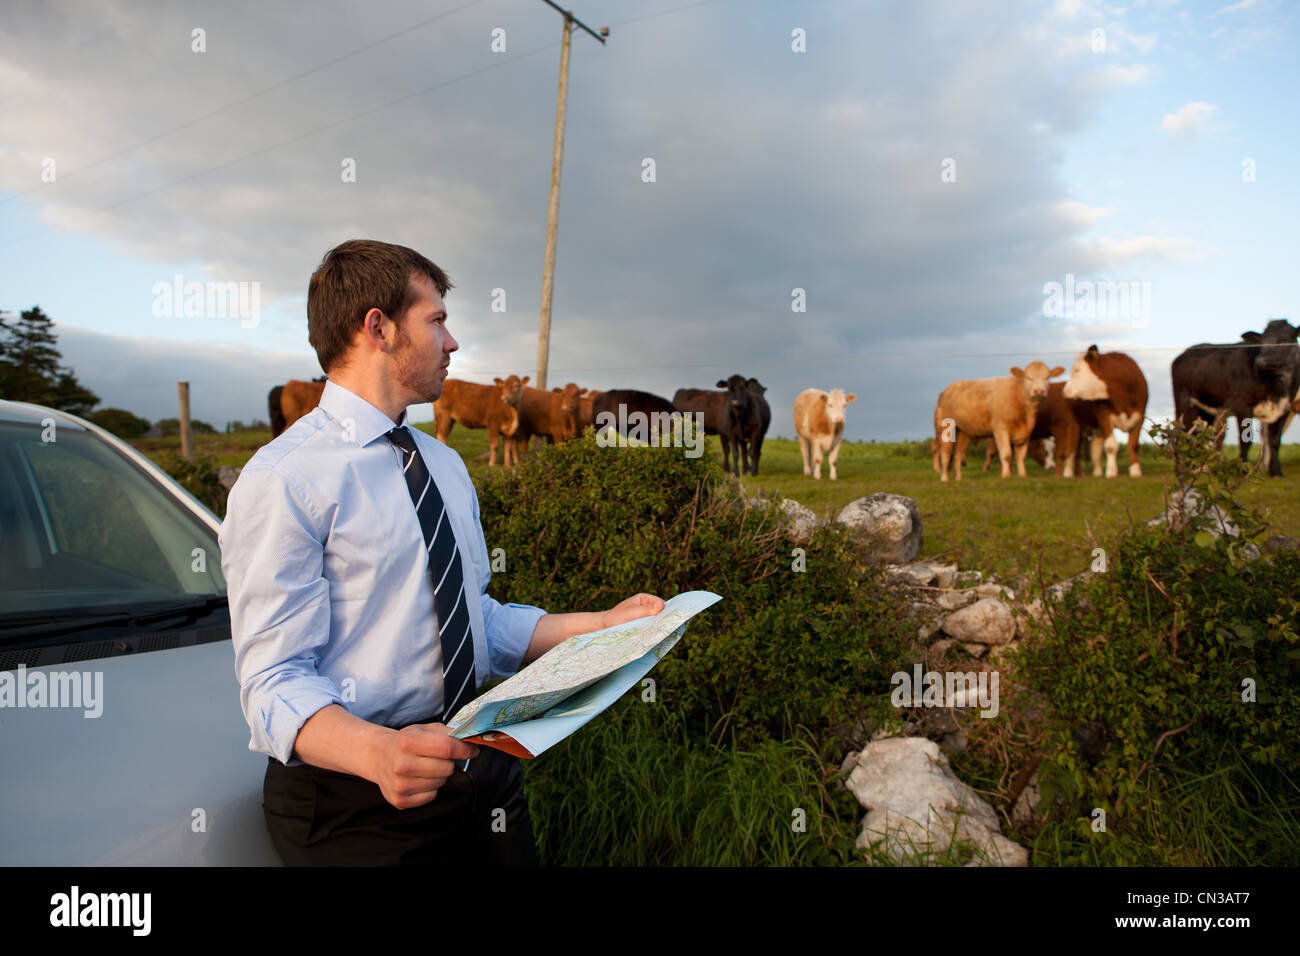 Businessman reading map in rural area Photo Stock